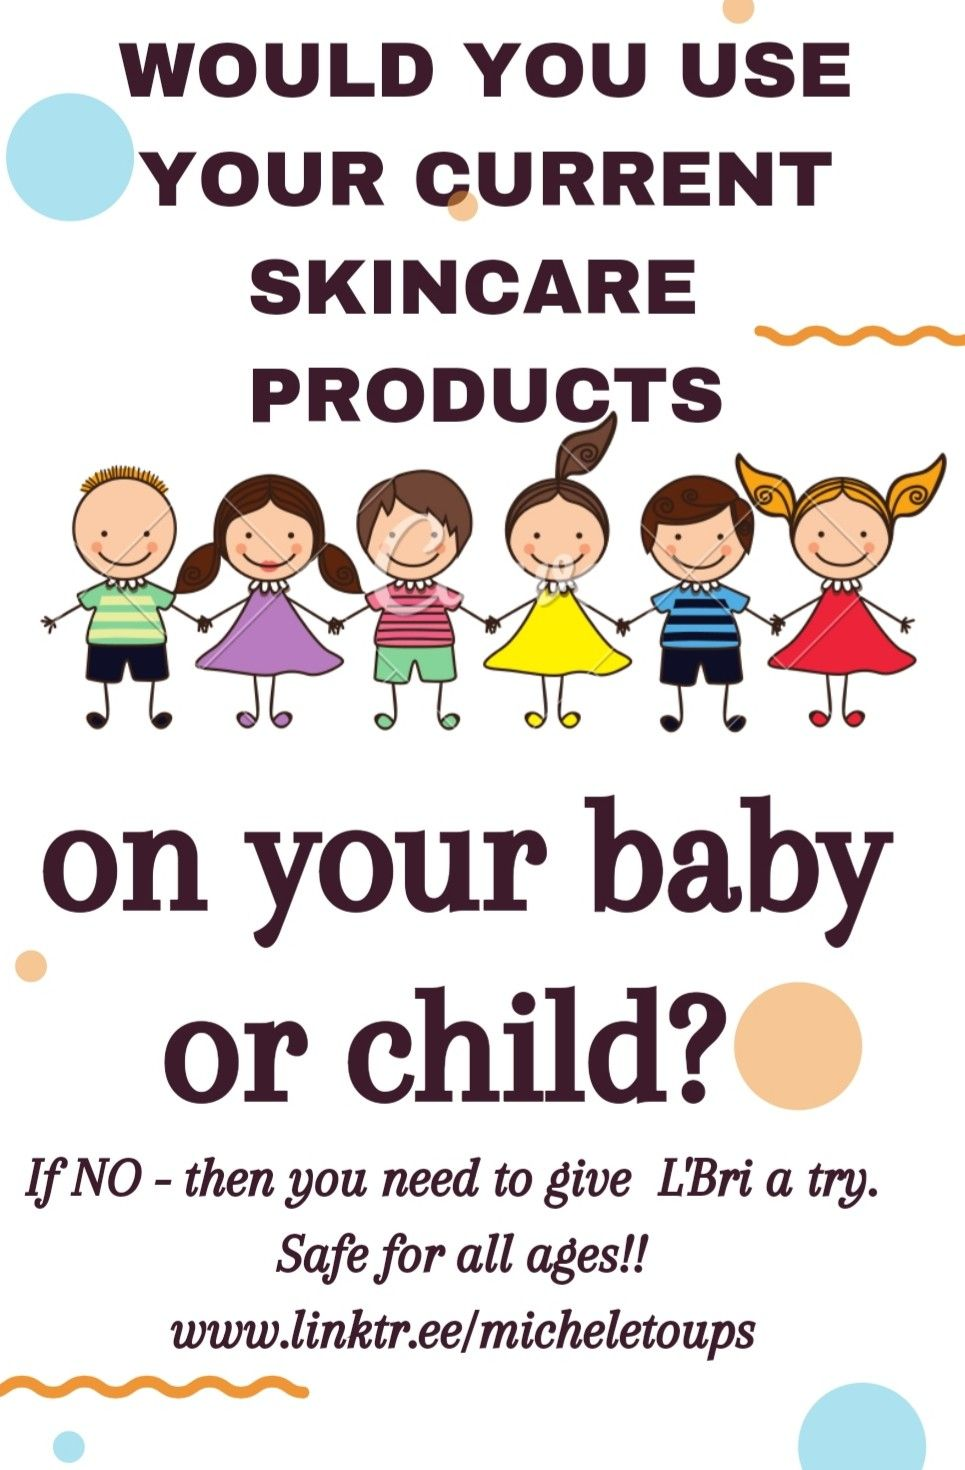 L'Bri products are suitable for all ages. Birth and up! If you wouldn't use your current regimen on your infant, why use it on you?! Safe for all! Message me about your free samples! #lbriforlife #lbripureandnatural #noanimalcruelty #bestyouever #antiaging #askmehow #bestyouever #psoriasis #eczema #antiaging #skincaregoals #safeforall #babysafe